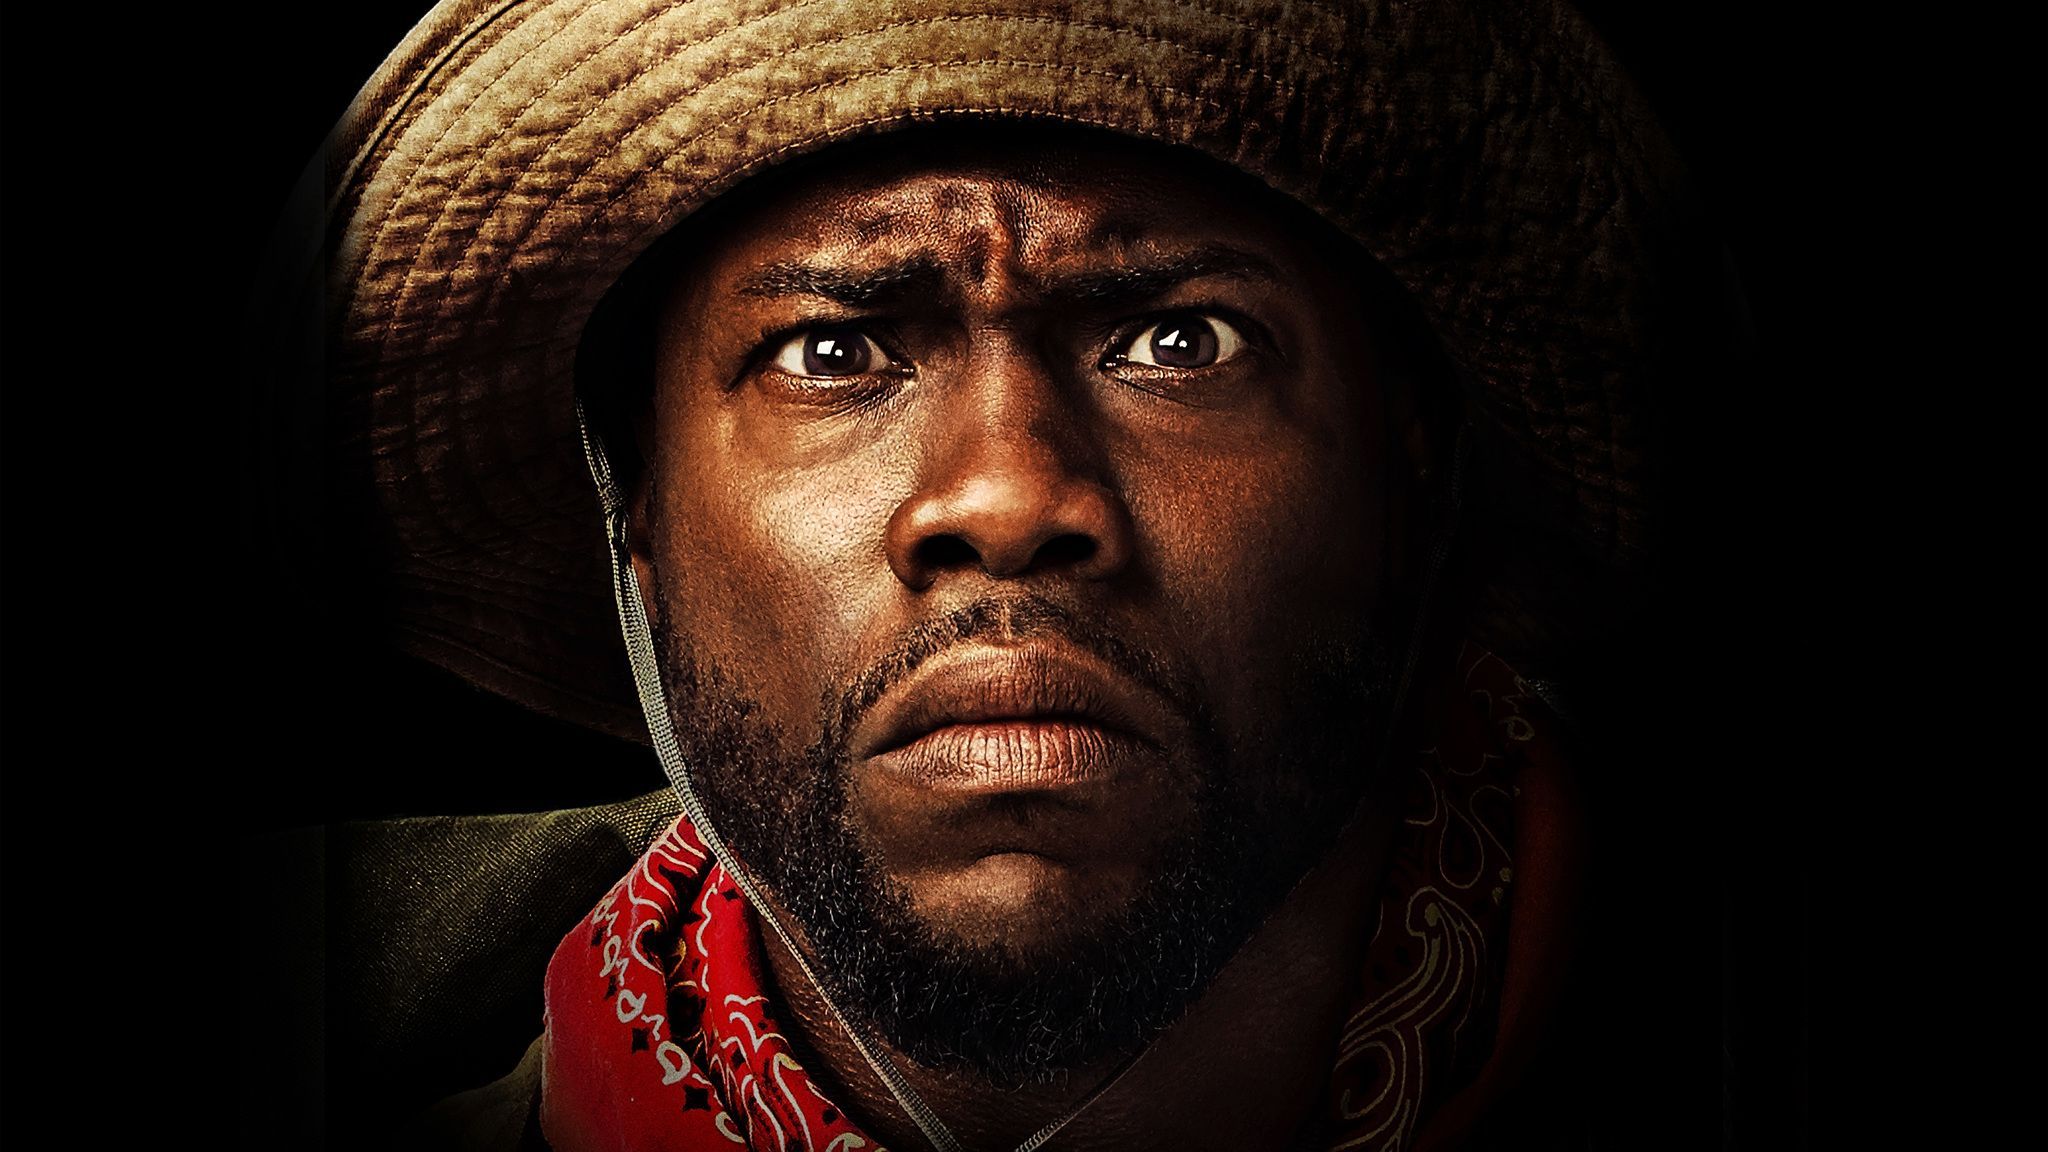 kevin hart actor